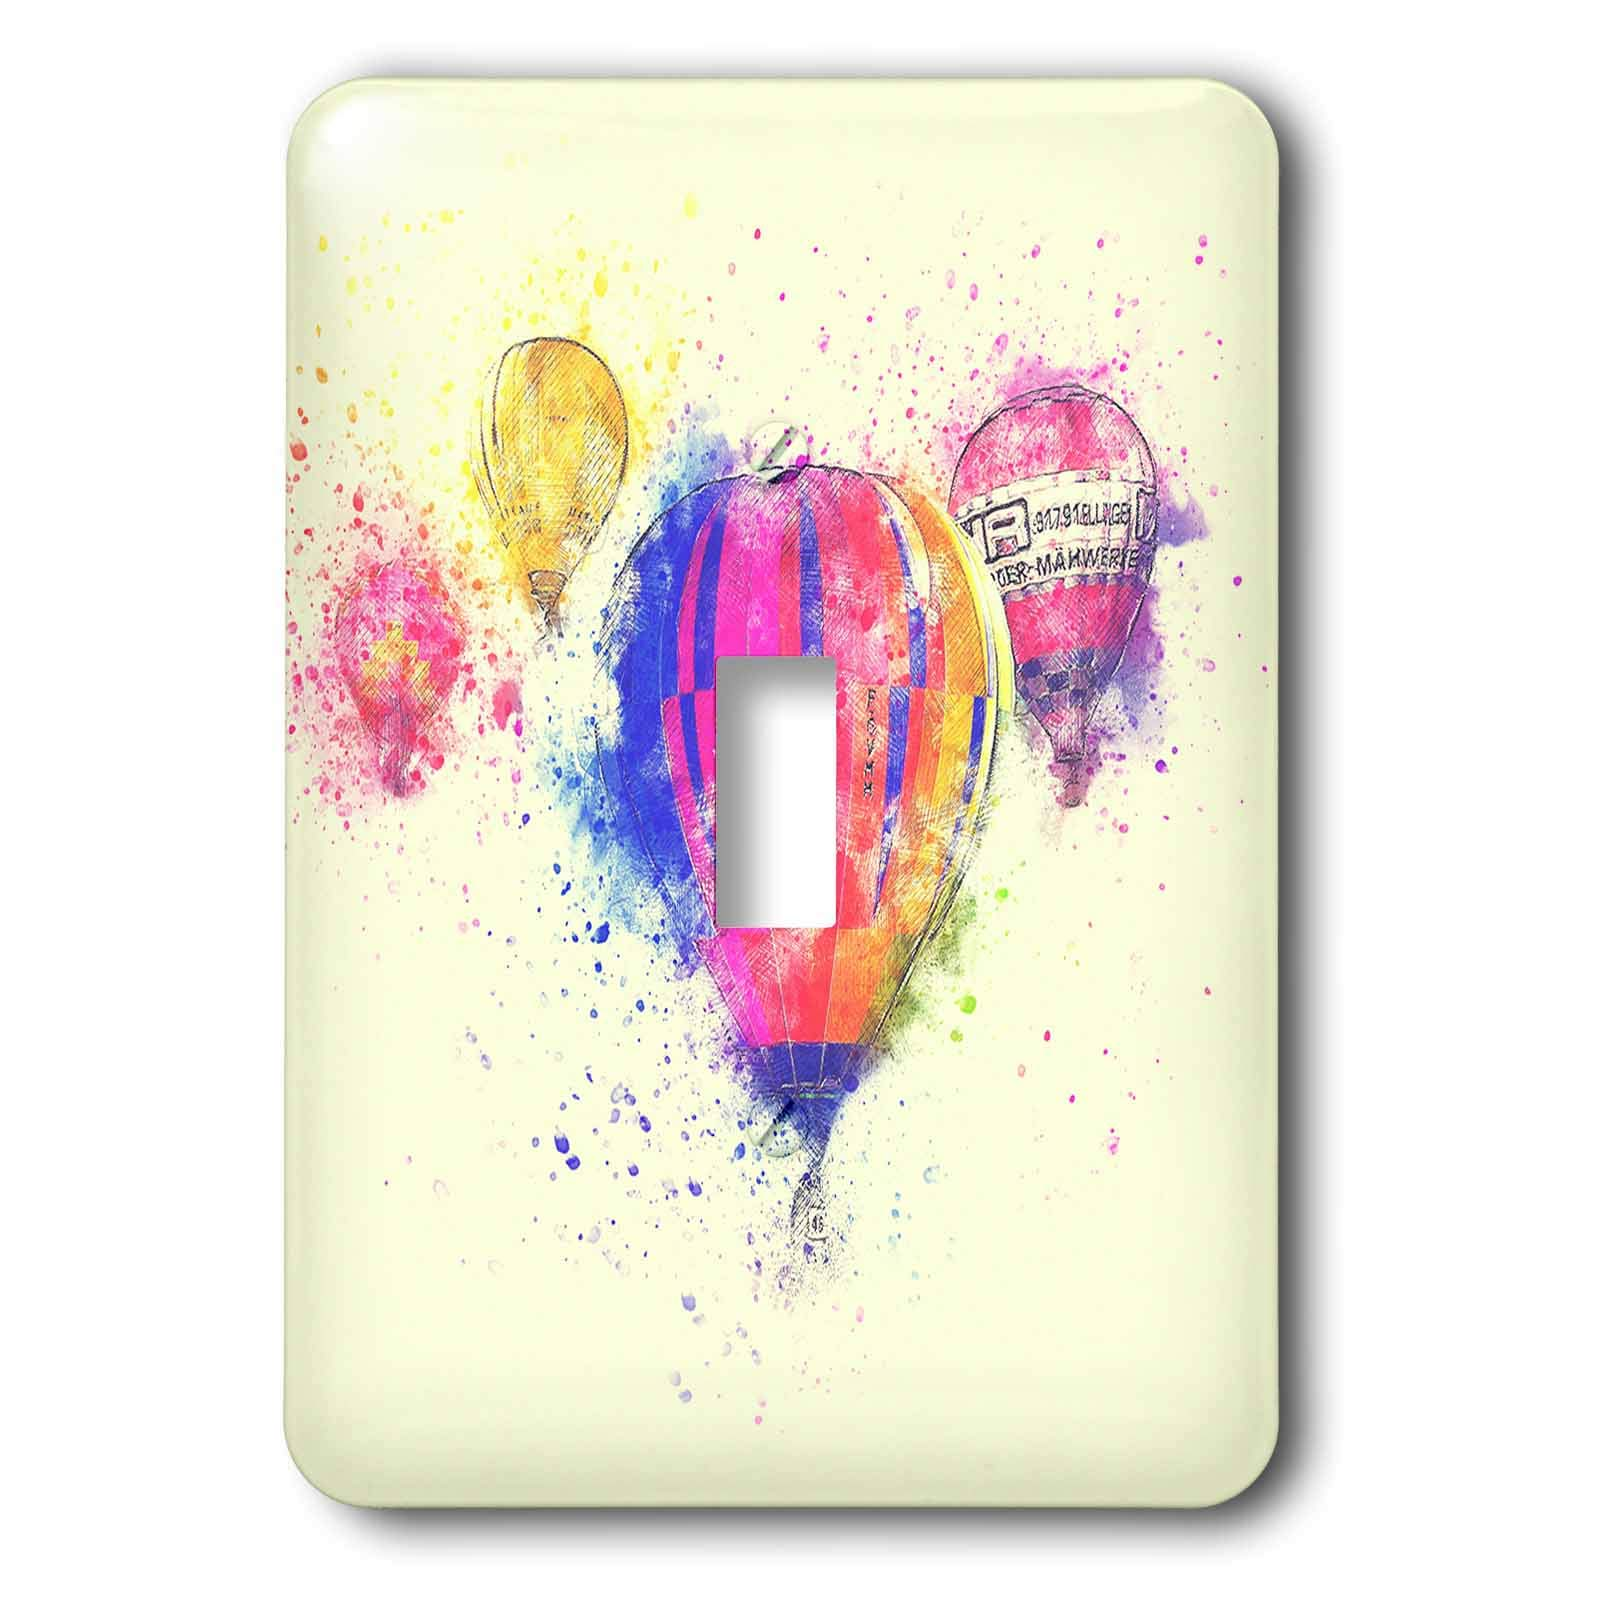 3dRose Andrea Haase Art Illustration - Hot Air Balloons Watercolor Painting - Light Switch Covers - single toggle switch (lsp_288990_1)